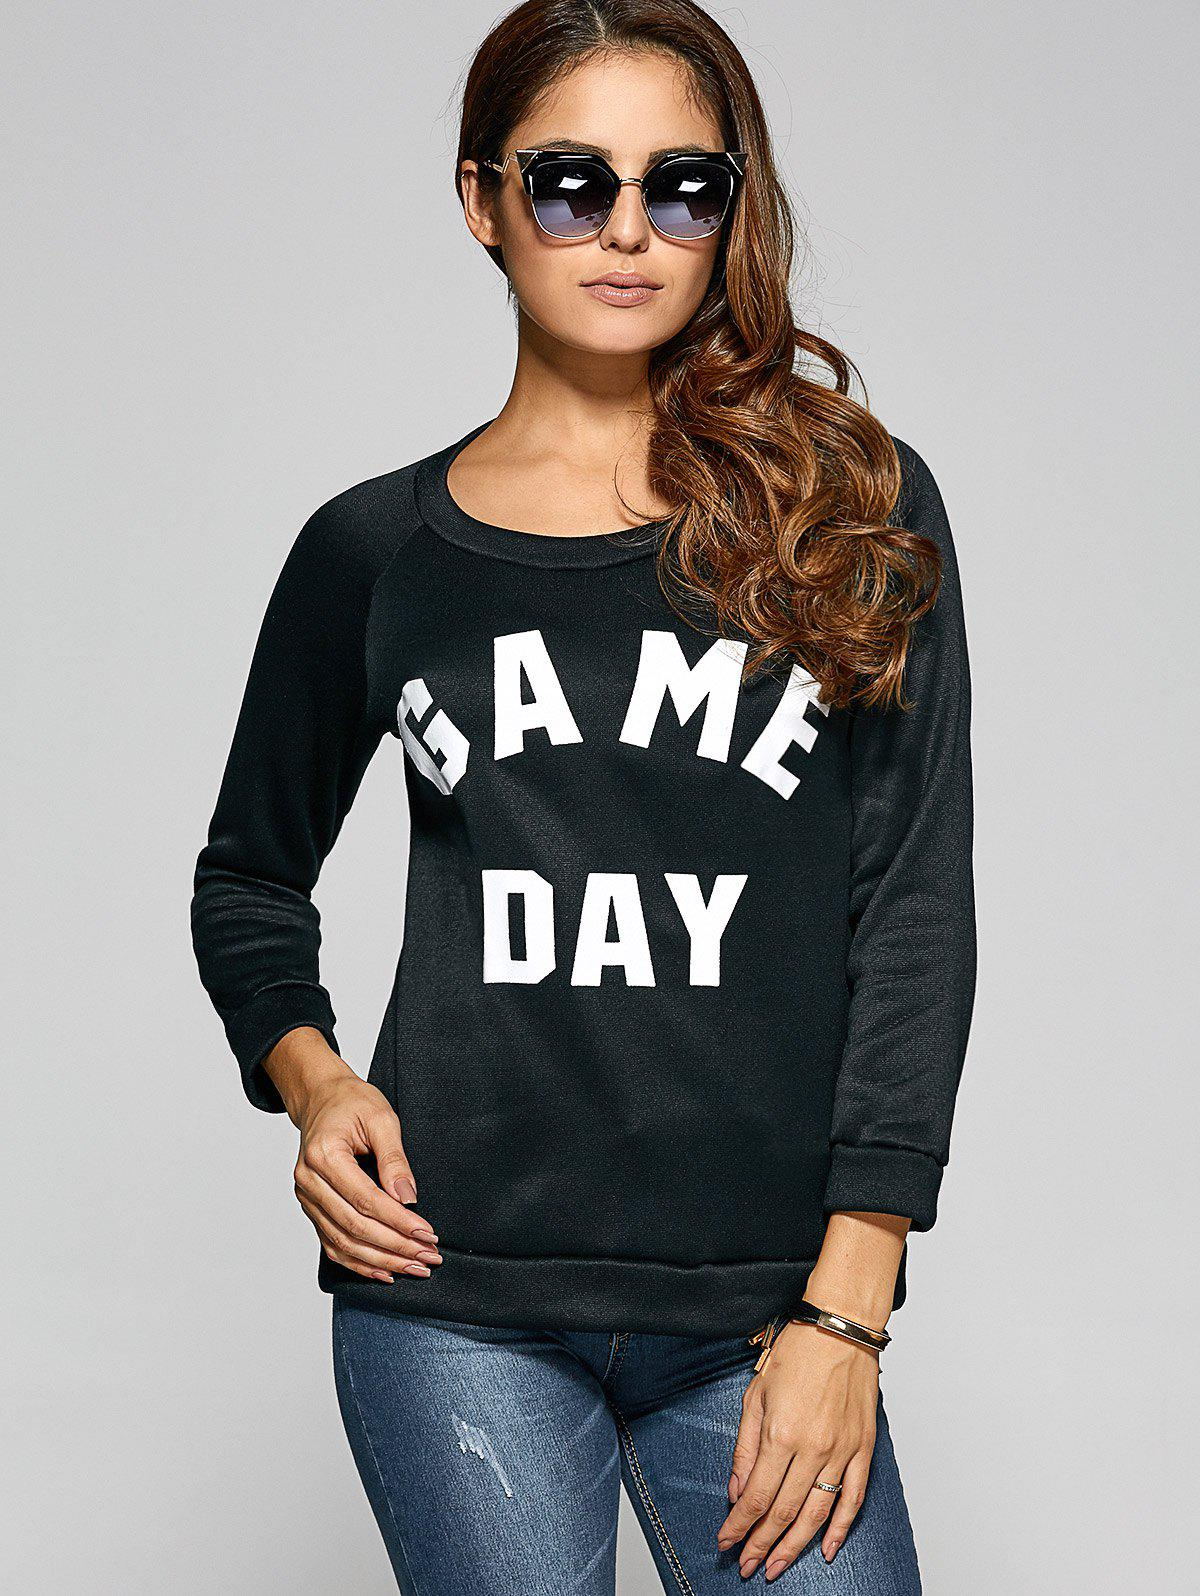 Game Day Print Pullover Sweatshirt r12 sexy game